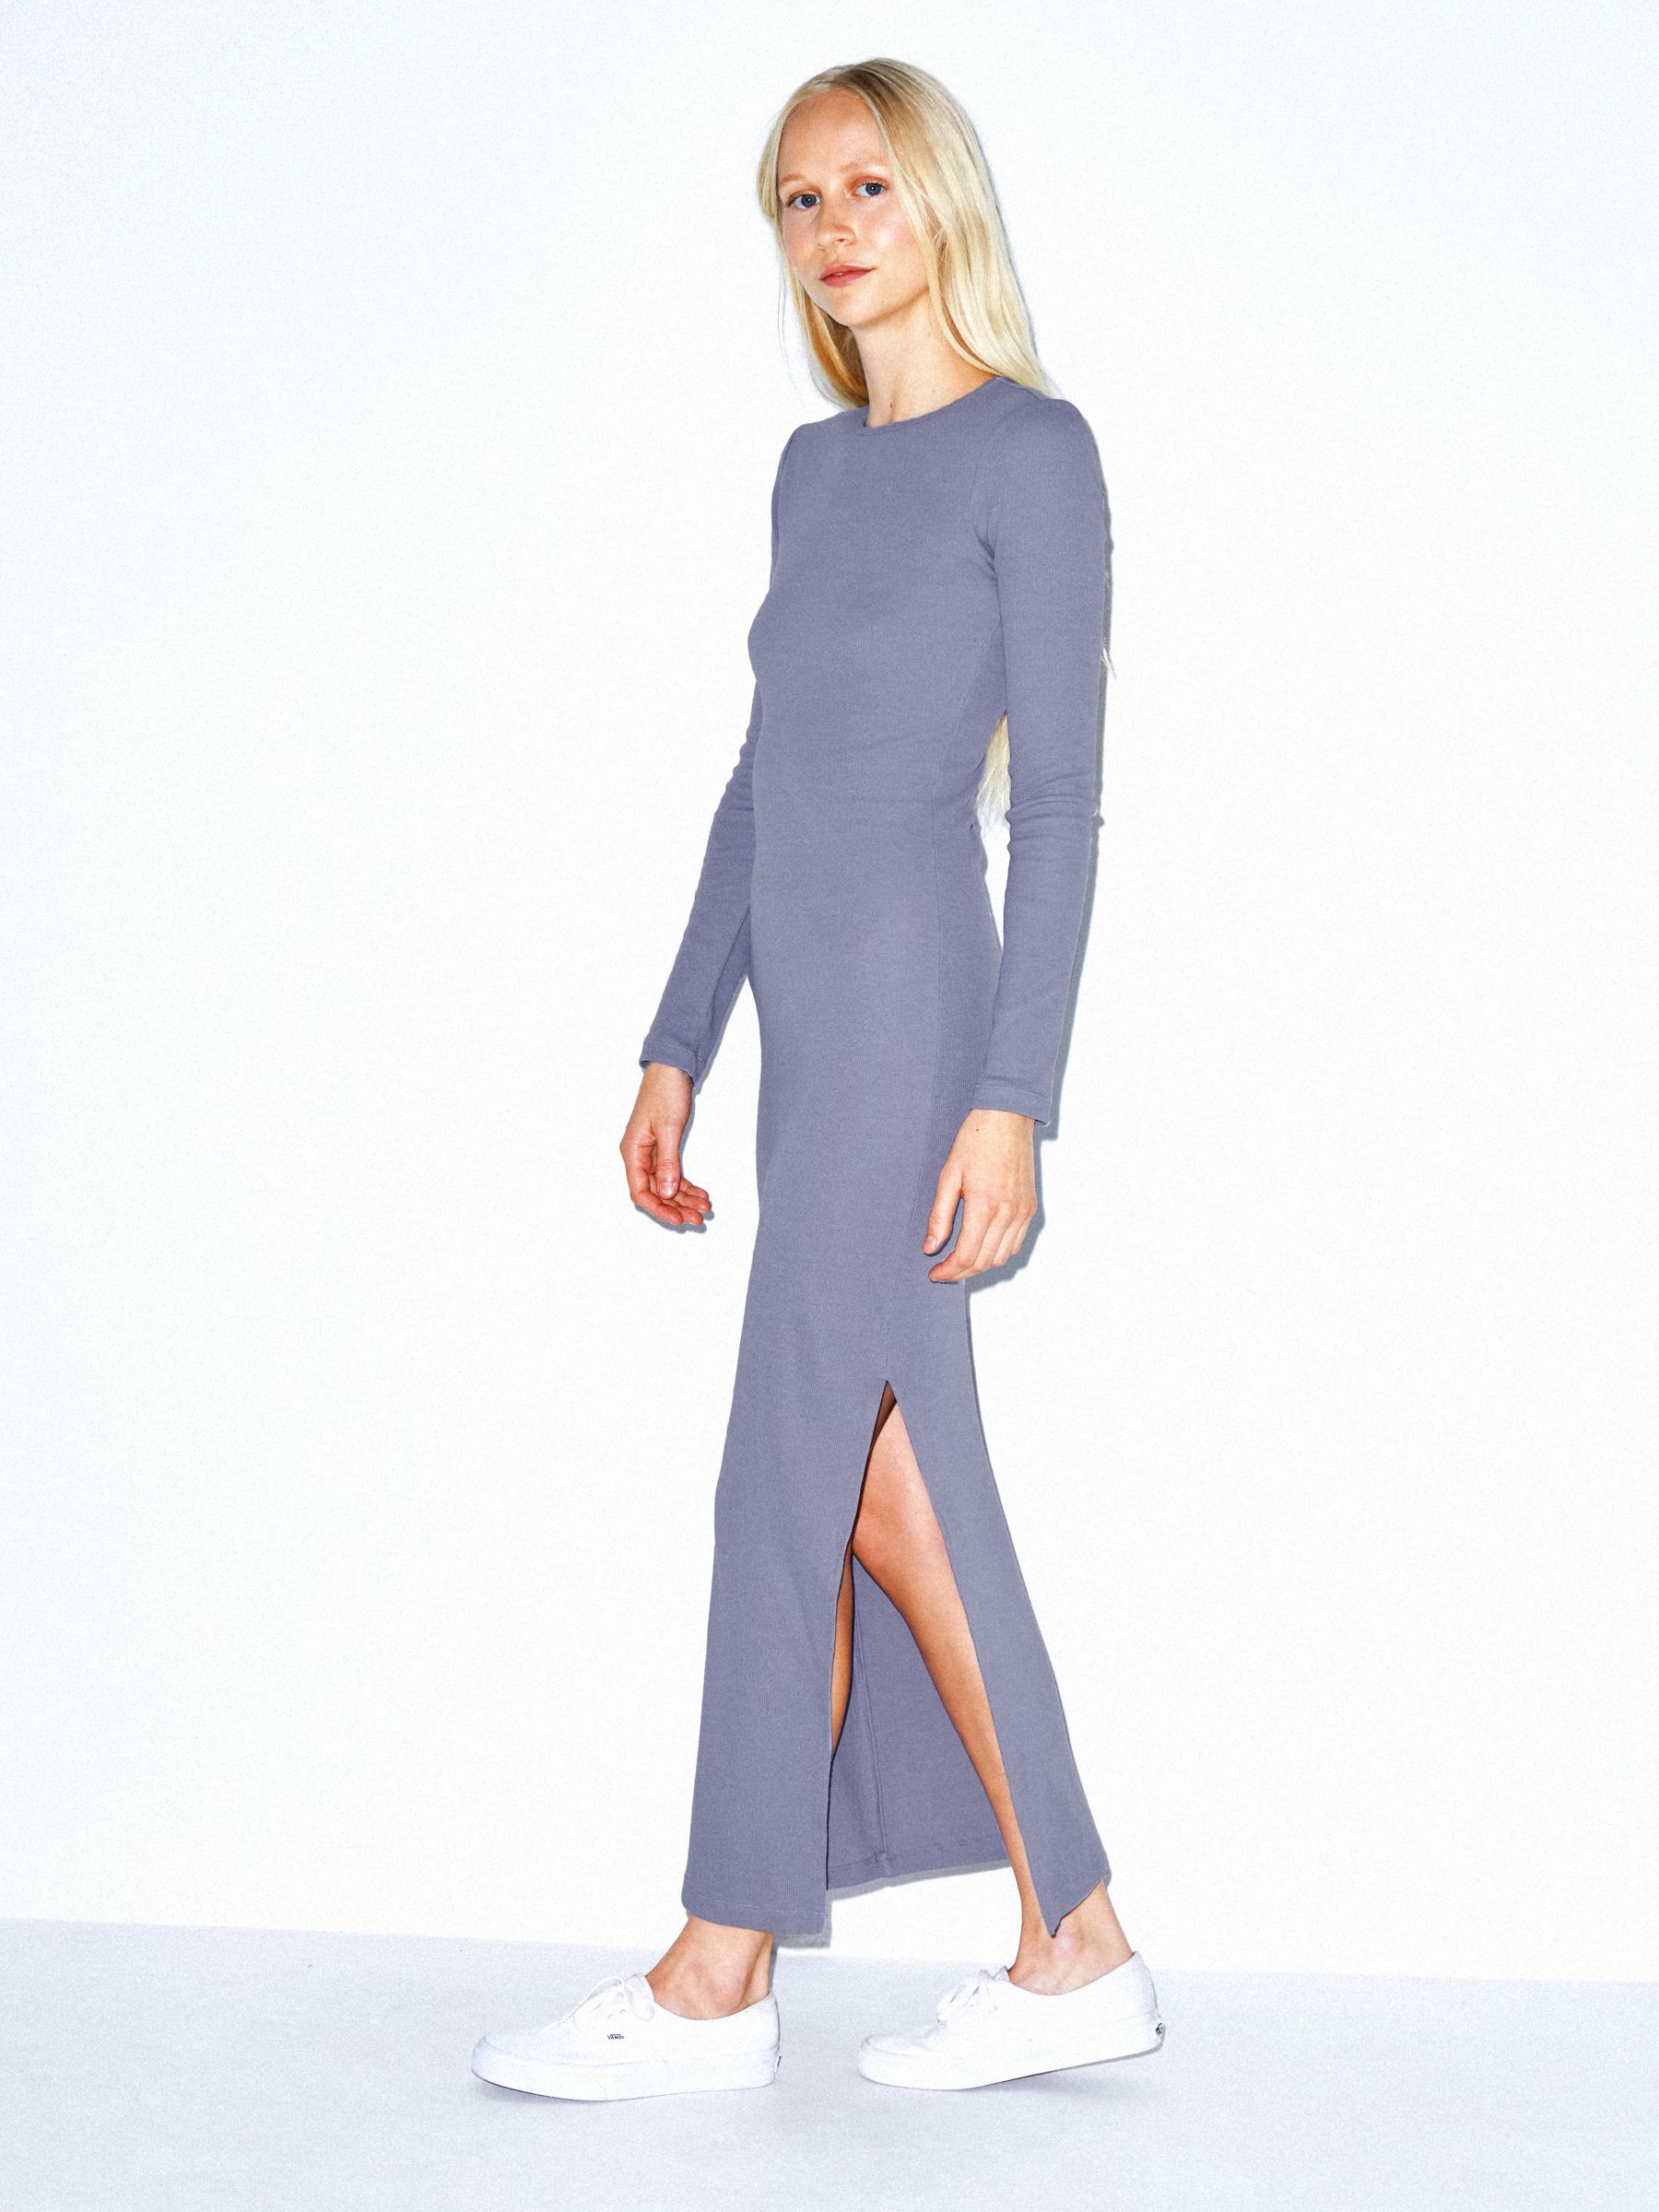 Cotton 2x2 Long Sleeve Crewneck Dress by American Apparel